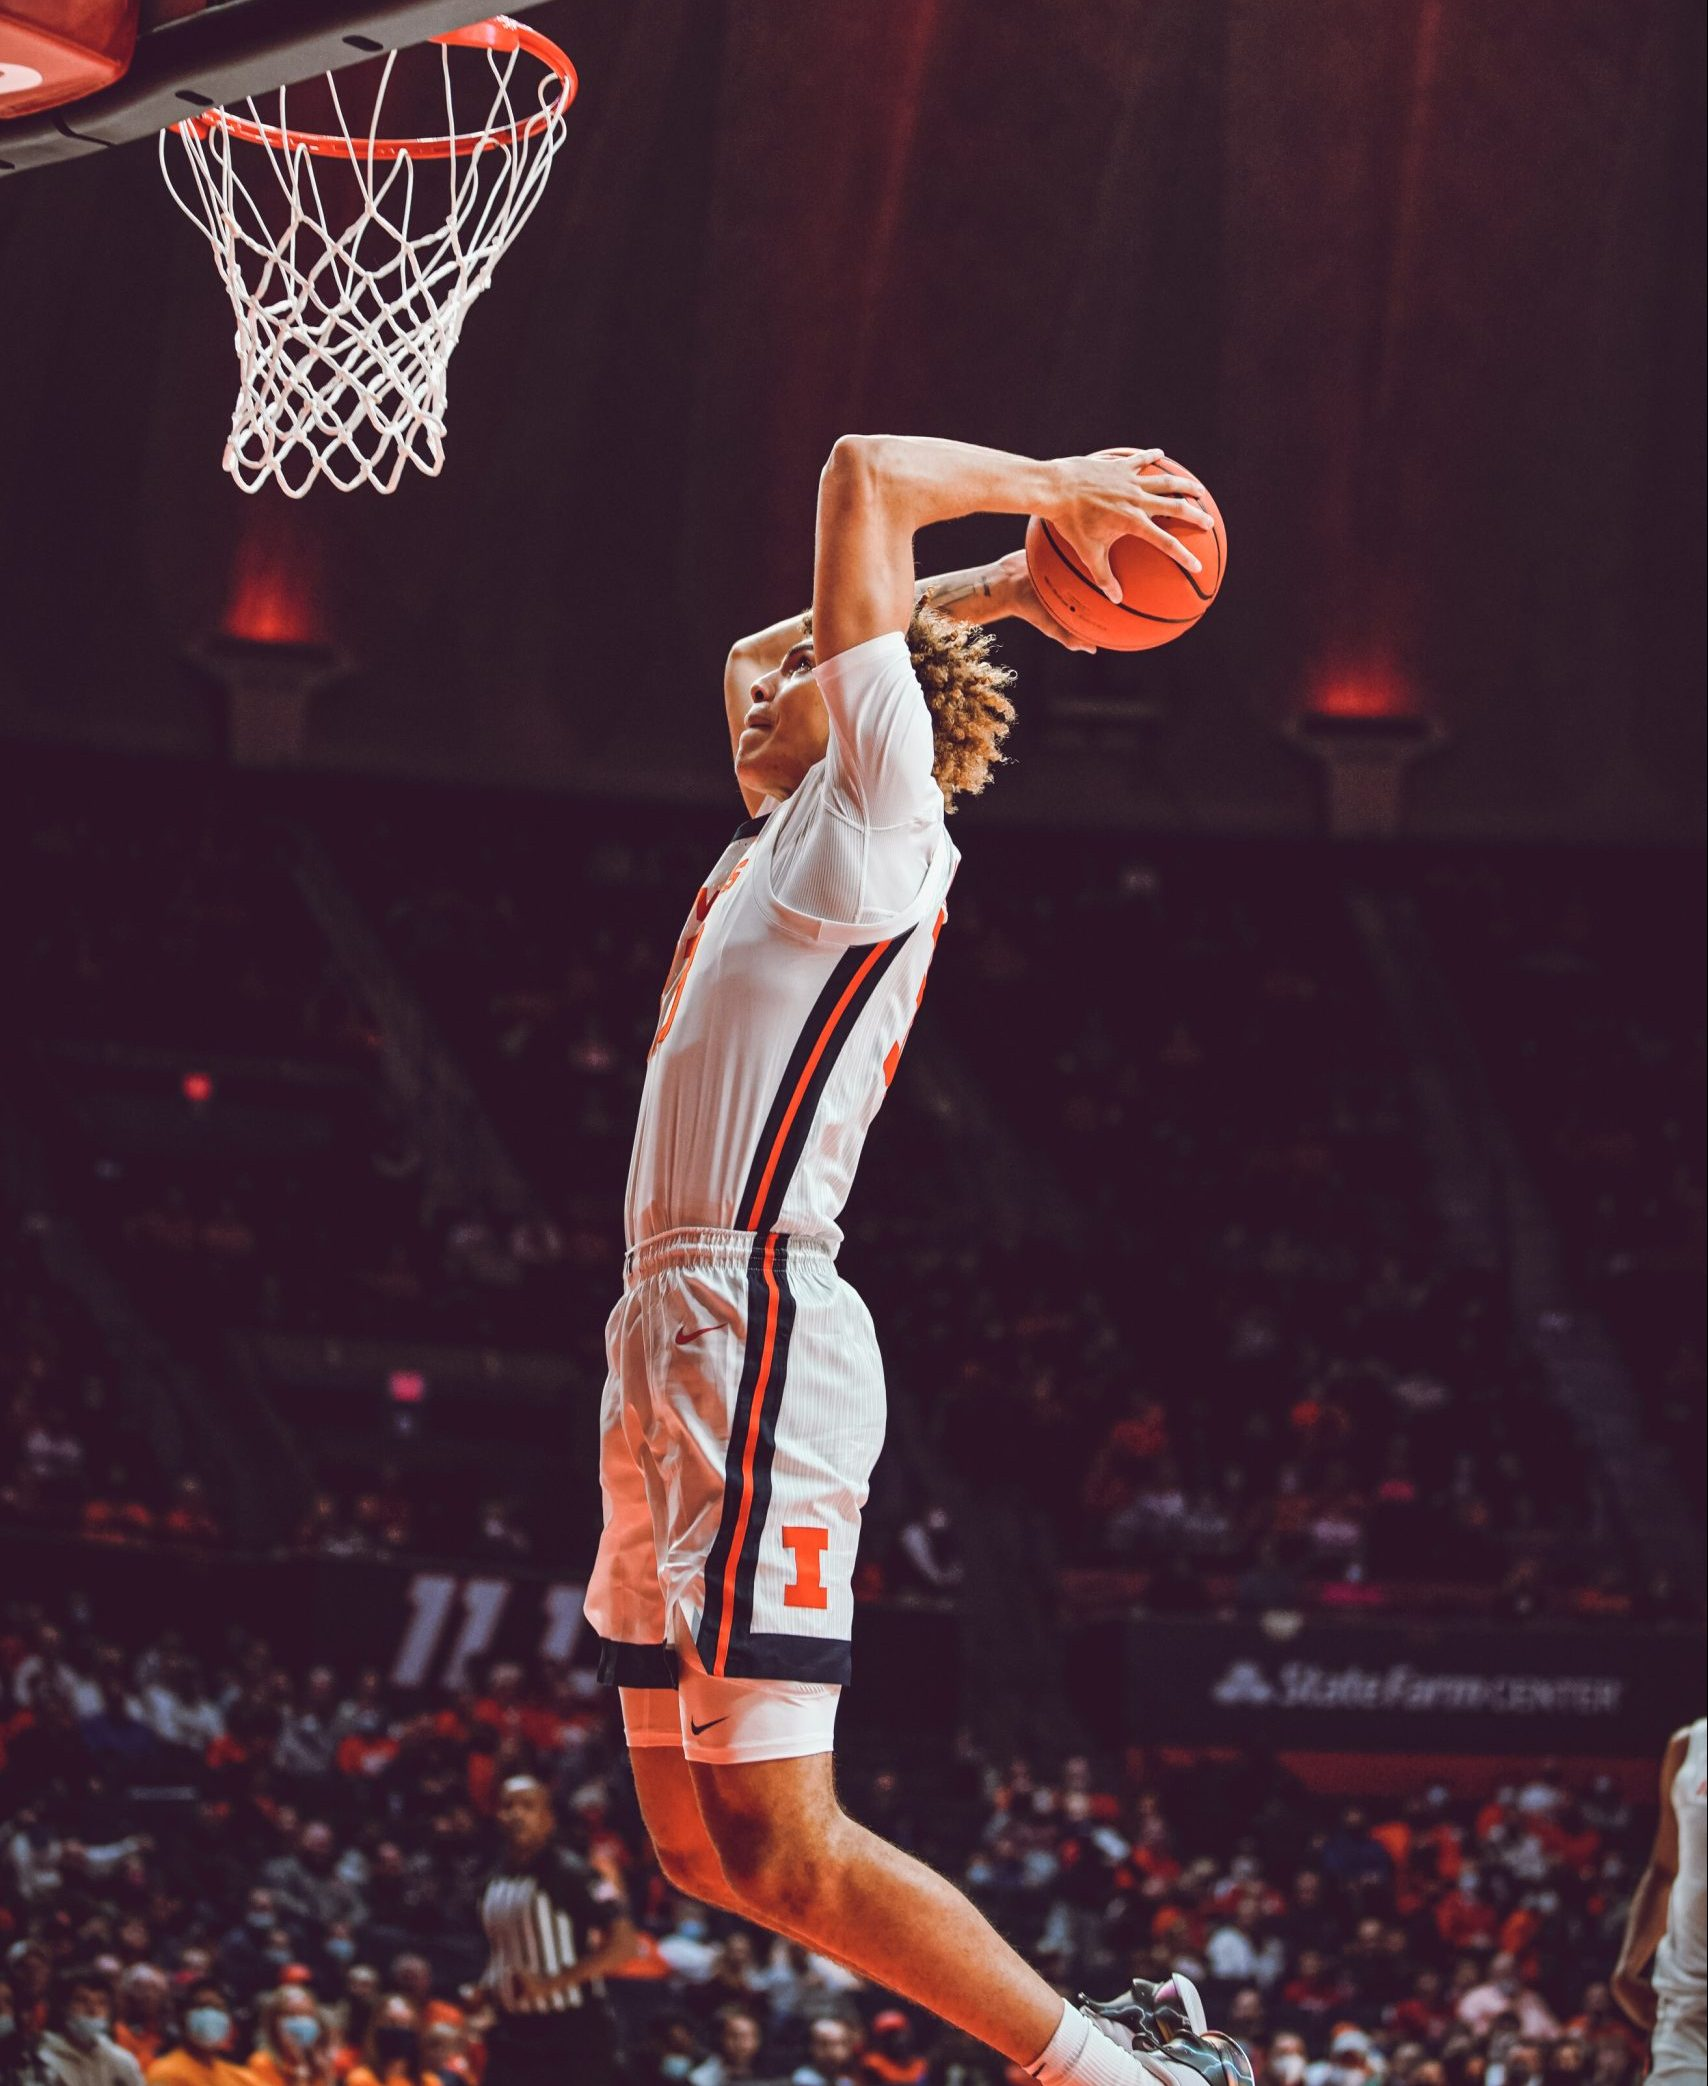 Trent Frazier's Defensive Prowess Leads Illini in Exhibition Opener Blowout